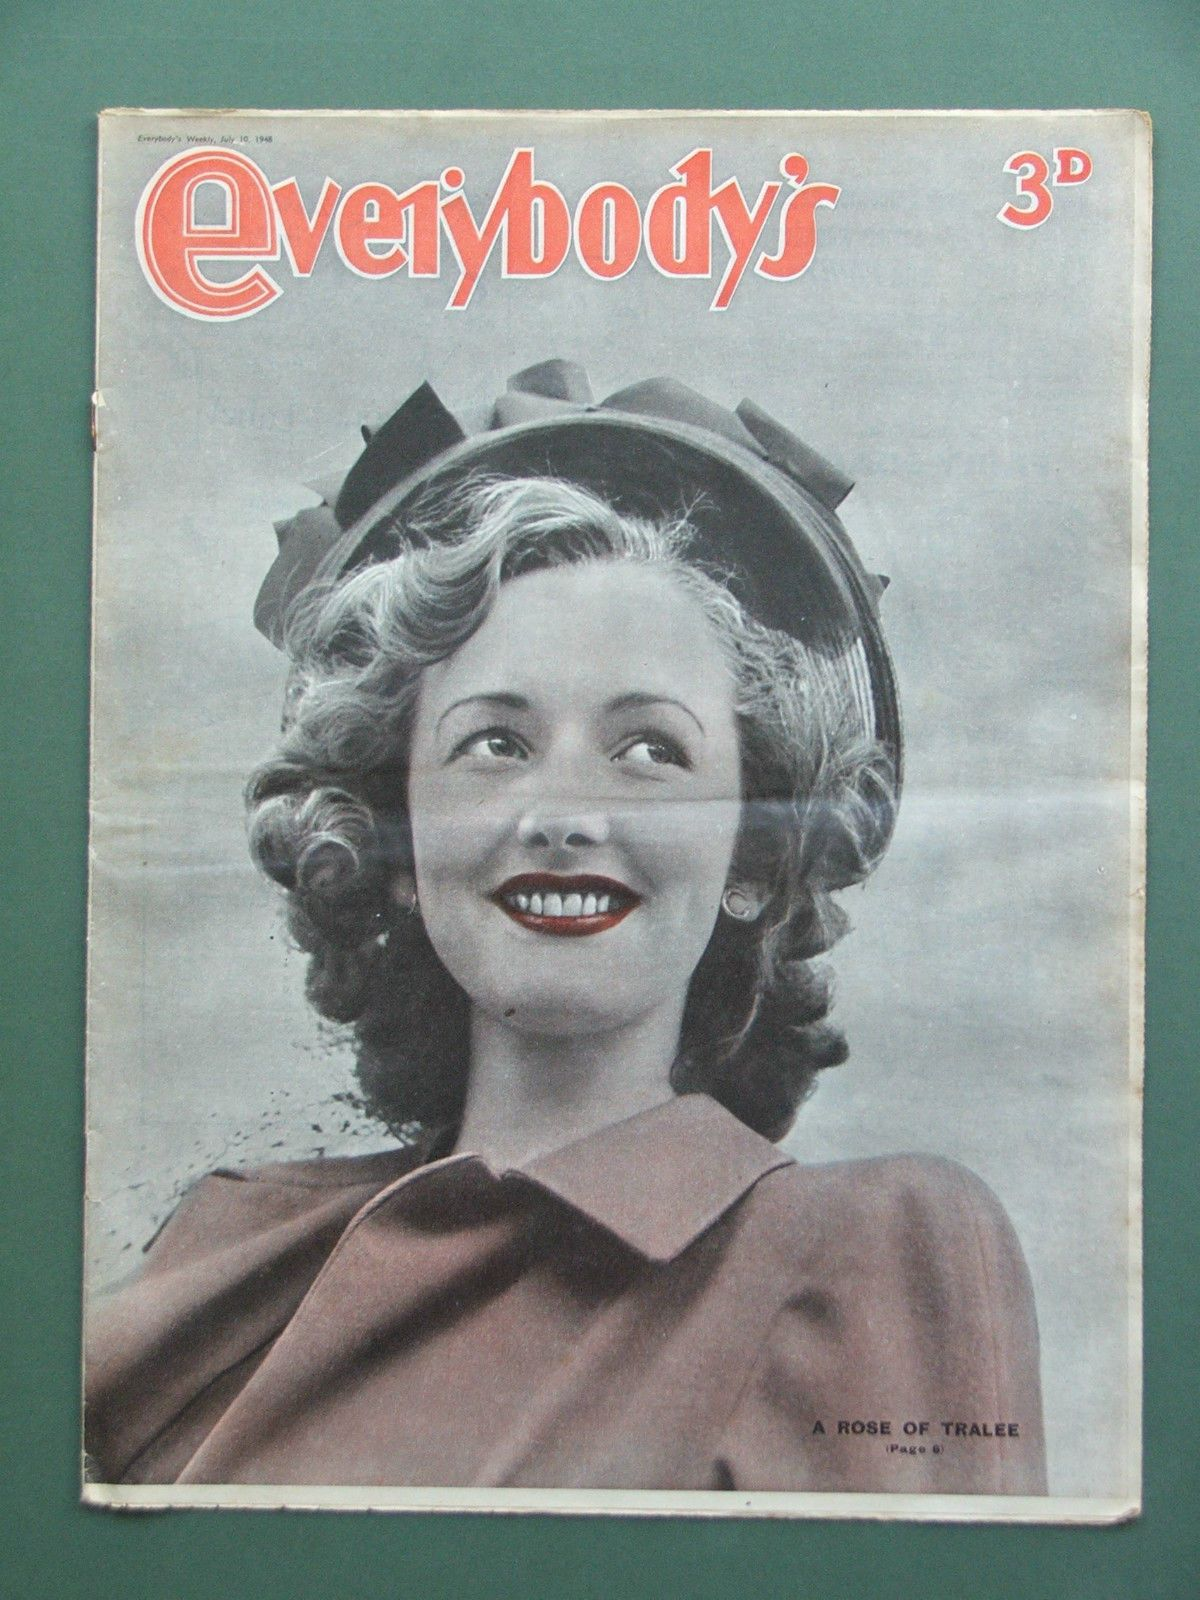 Everybody S Magazine July 10th 1948 Ventriloquism Windmills Speedway Riding The Rose Of Tralee Tralee Festival